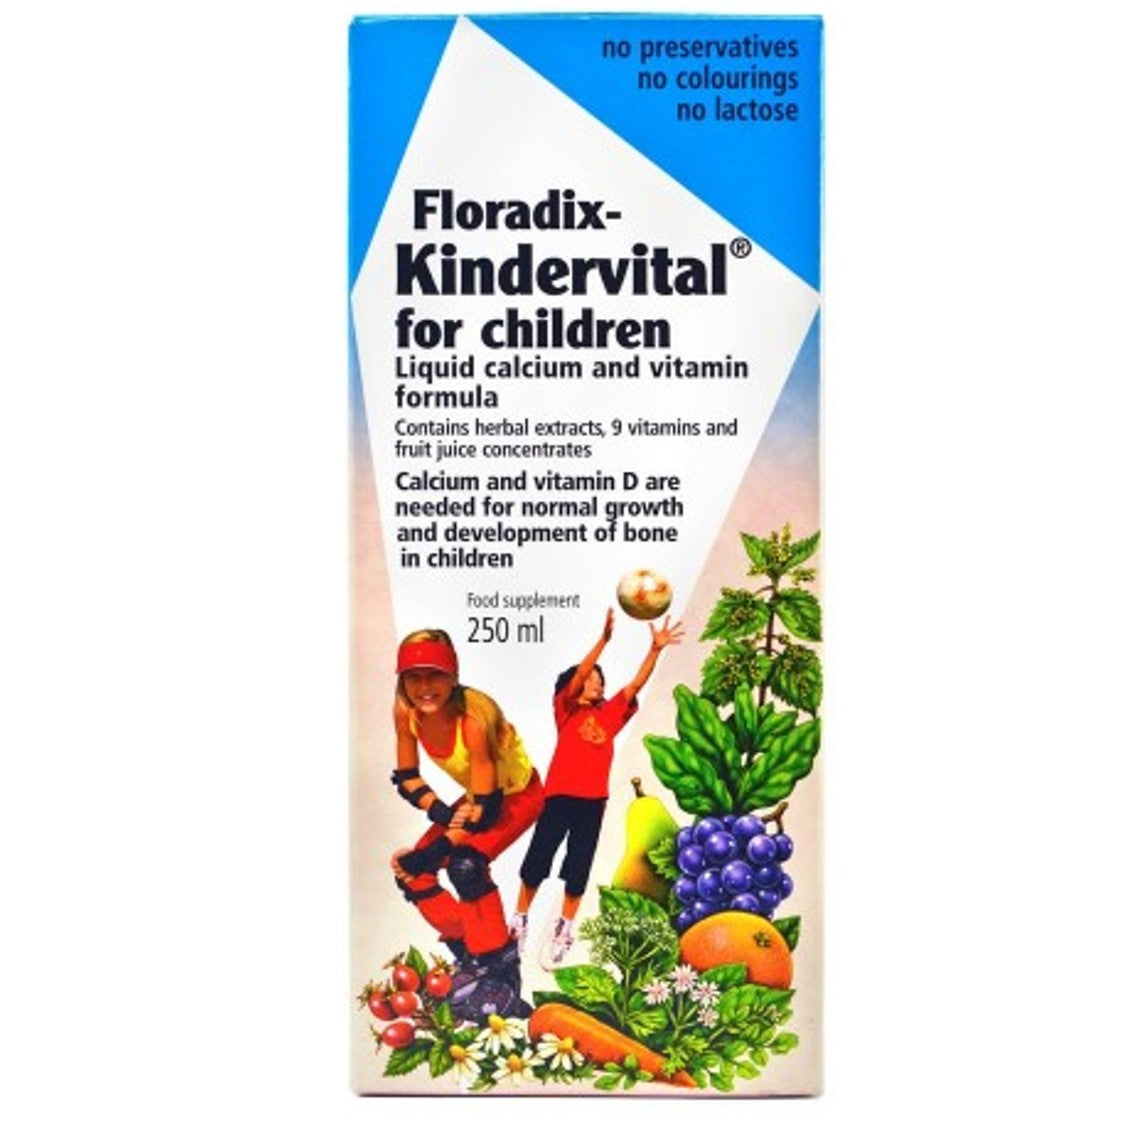 Salus Haus Floradix Kindervital for Children, 250 ml-NaturesWisdom